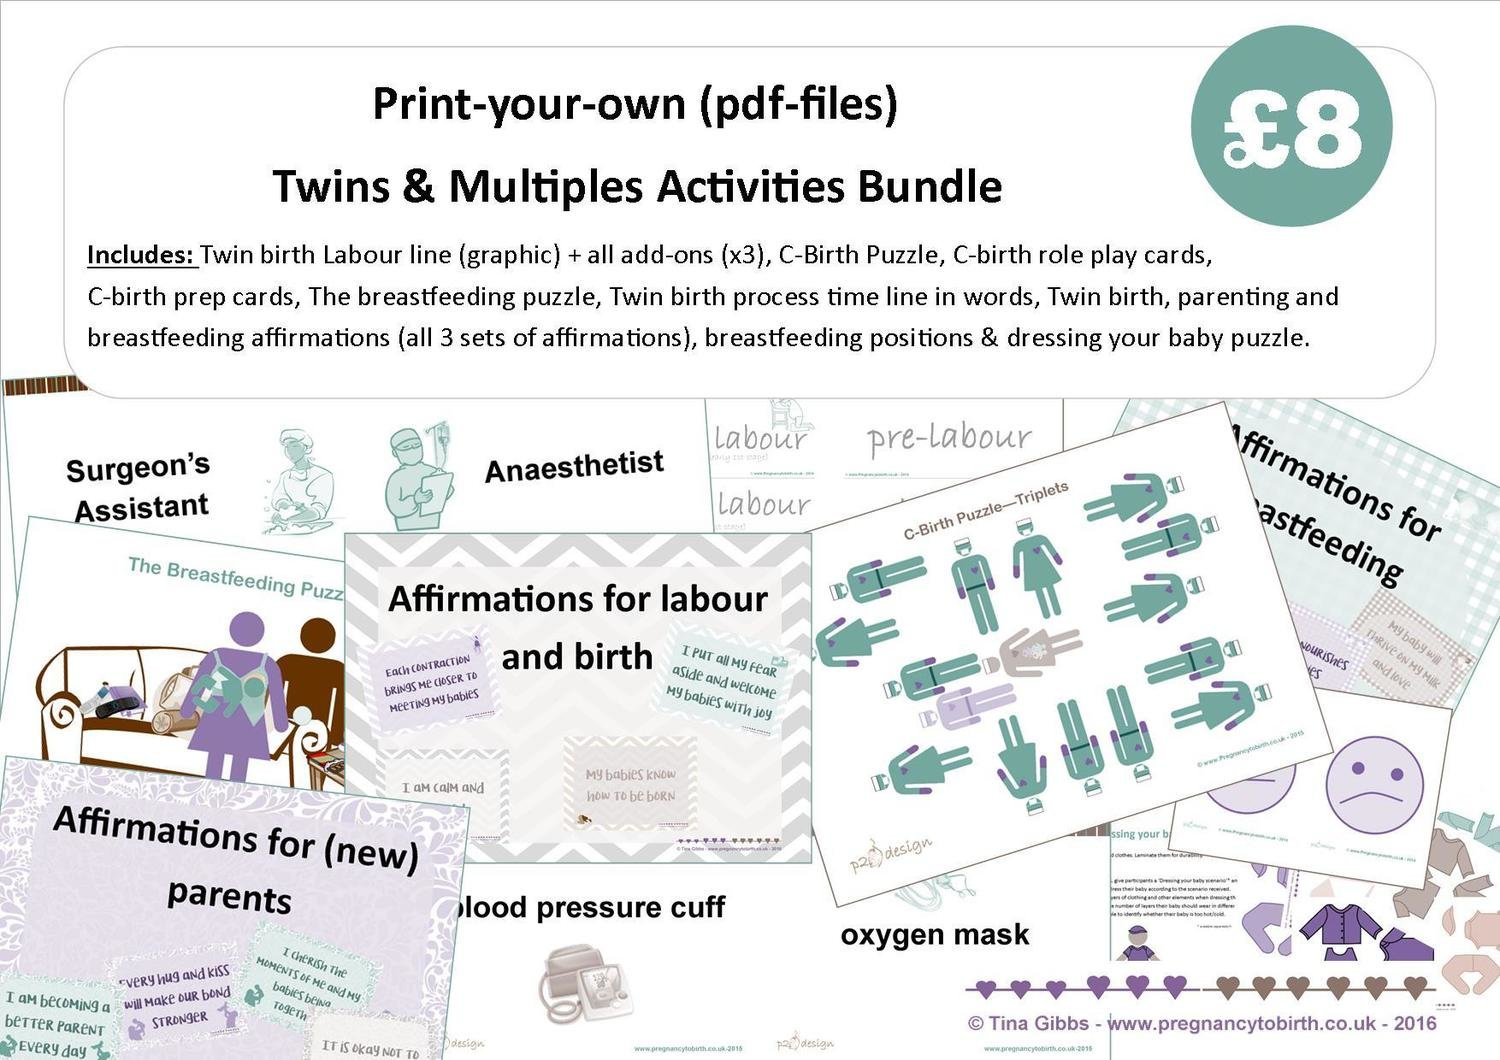 Twins & Multiples Activities Bundles (zip file containing pdf files)